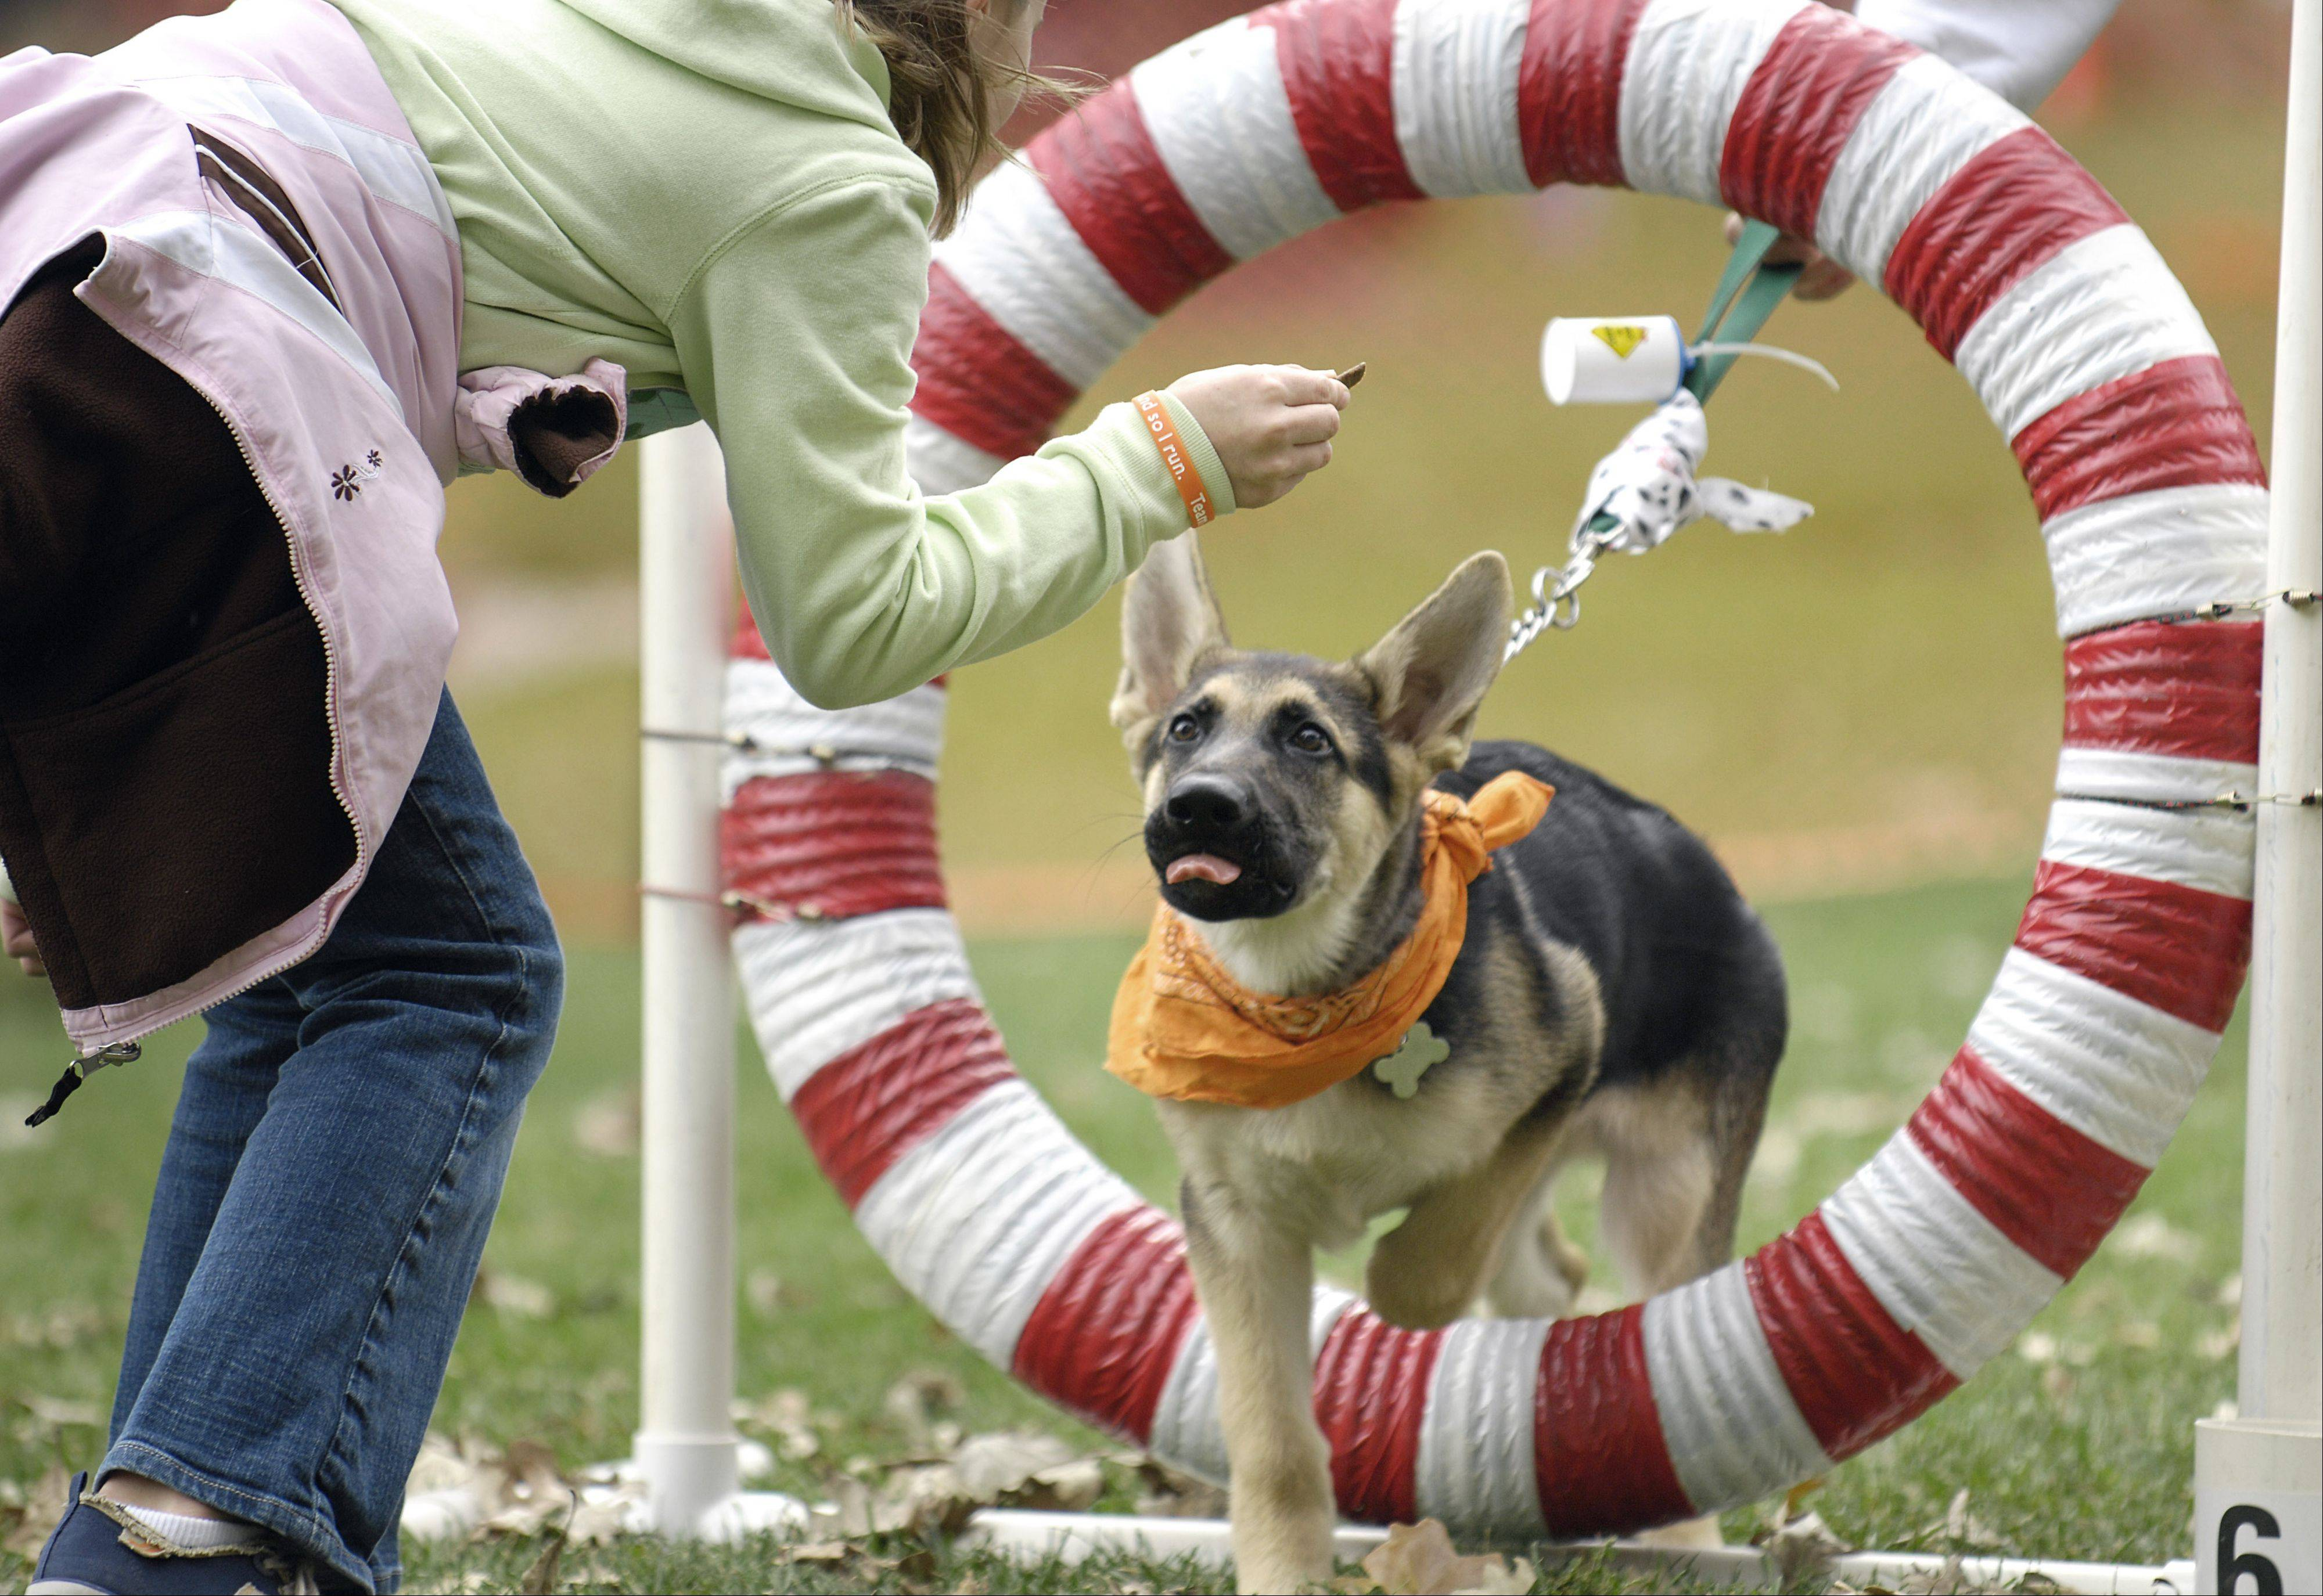 Dogs and their owners can watch agility demonstrations and try the tricks themselves at Dog-tober Fest, set for noon to 4 p.m. Saturday, Oct. 1, in Deicke Park, Huntley.